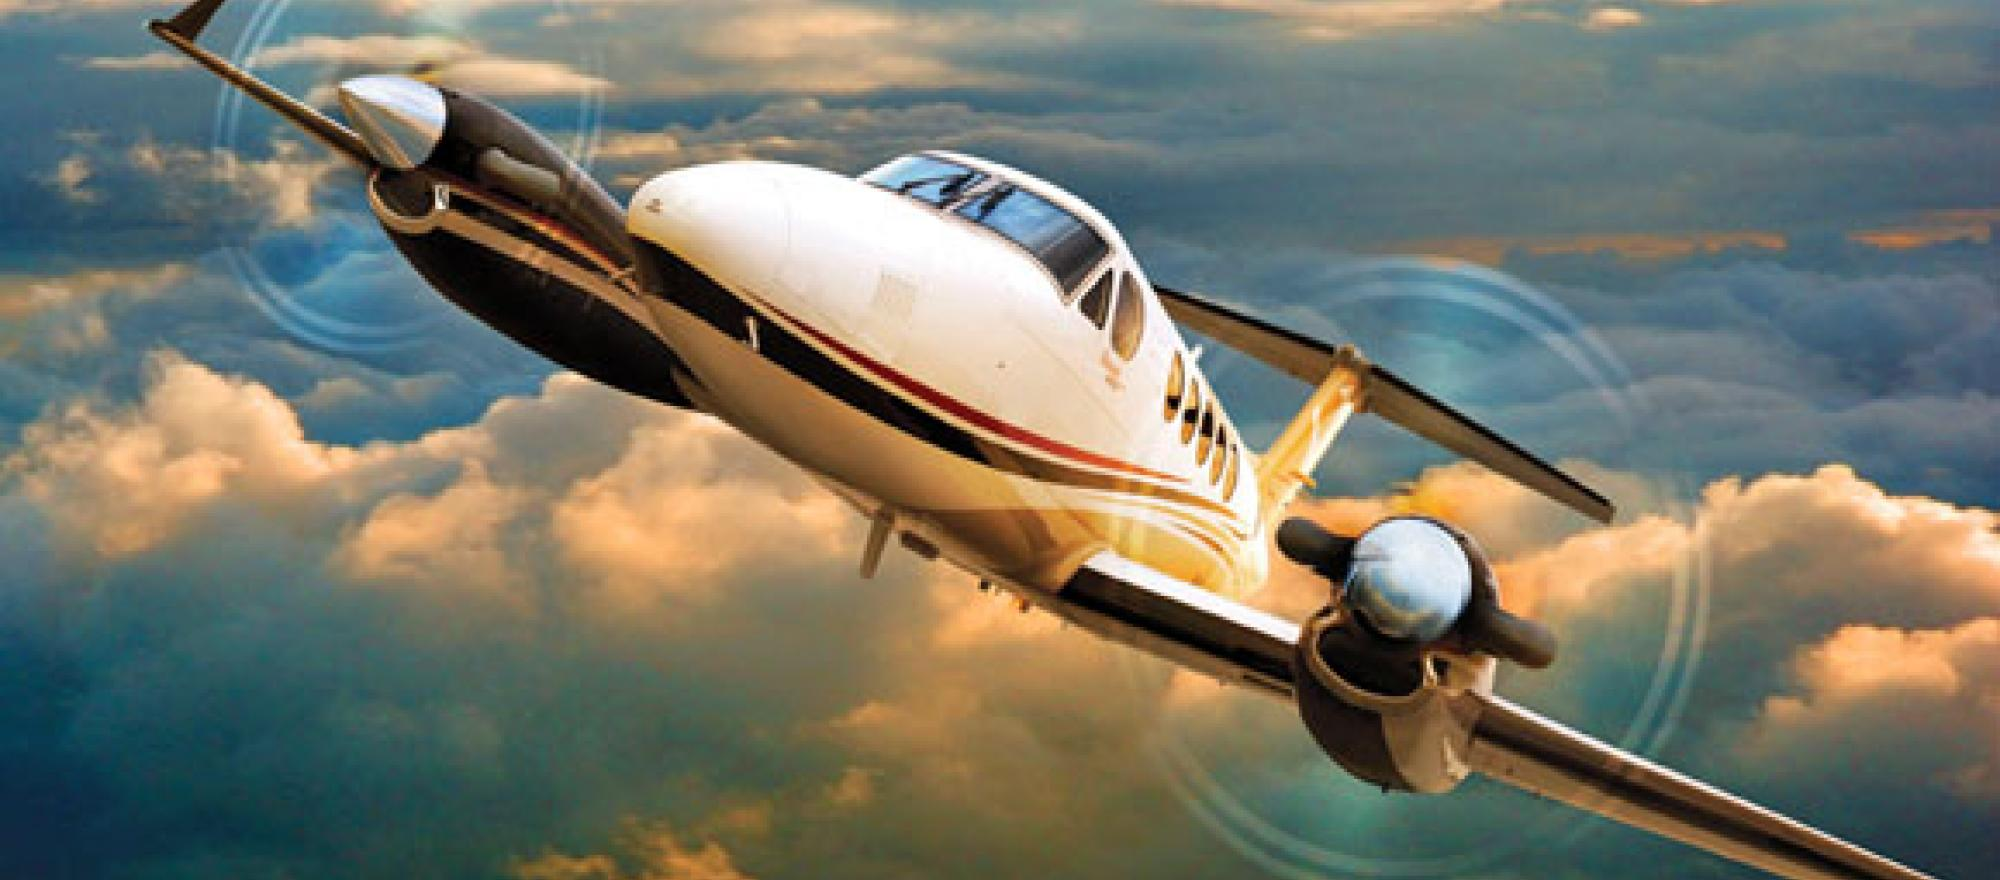 While the King Air 250's performance is impressive, you can enhance it even f